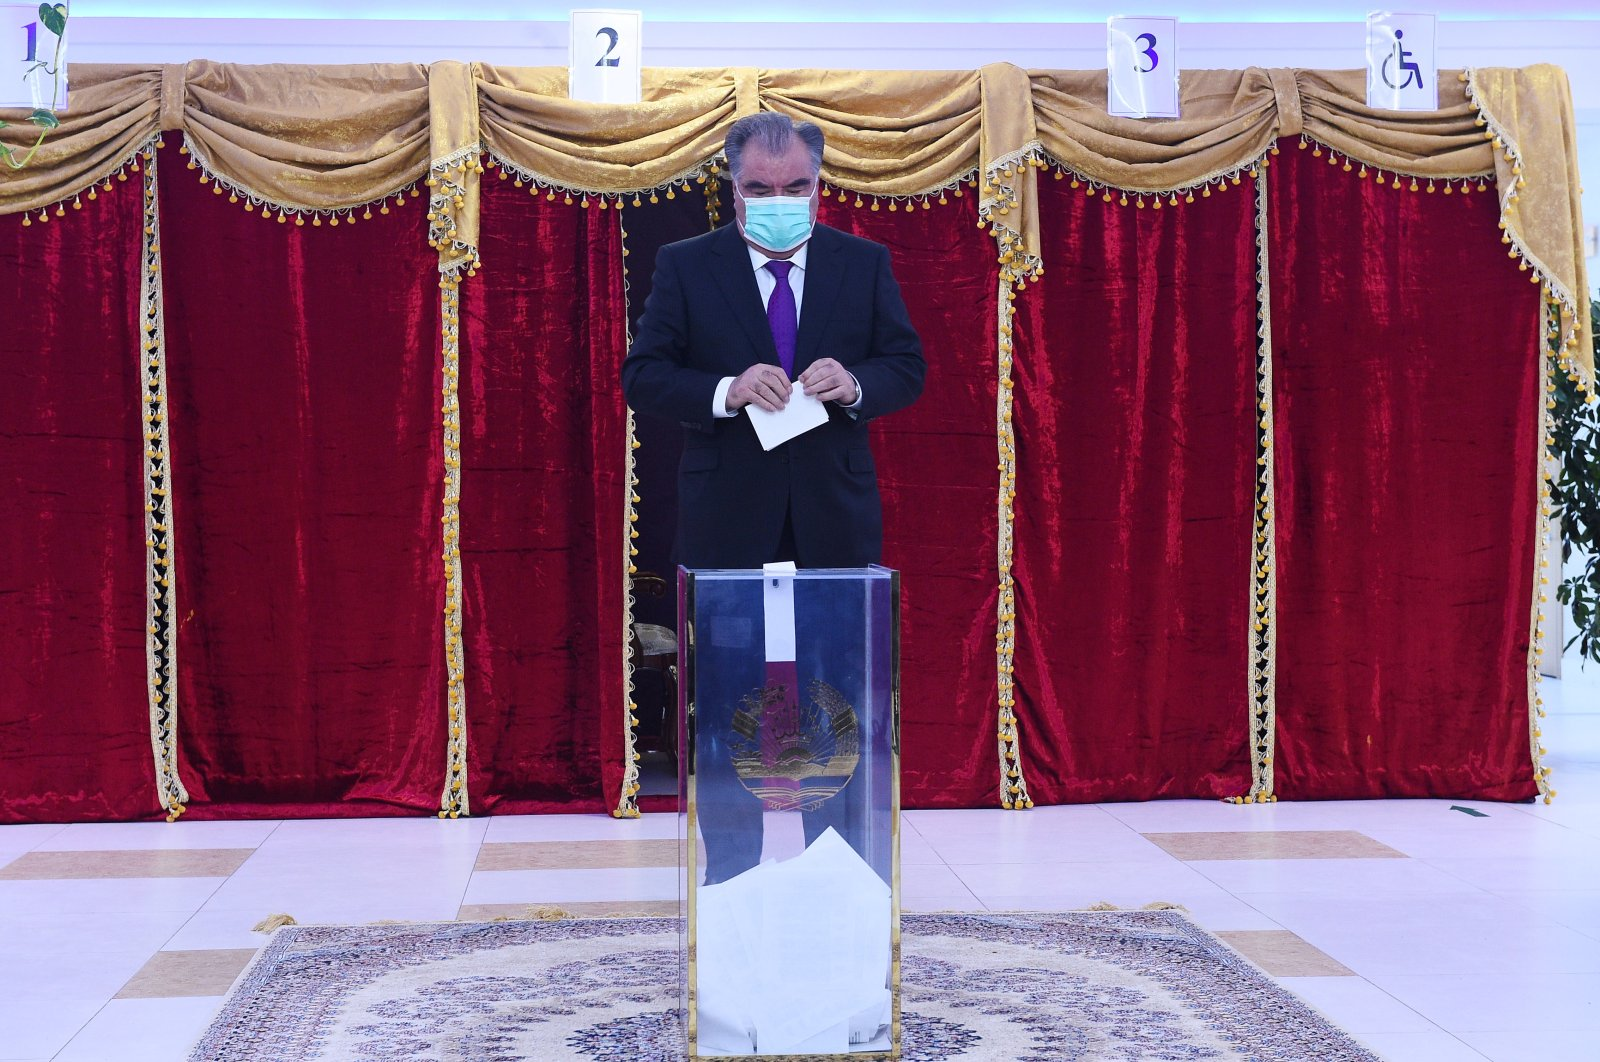 Tajikistan's President and Presidential candidate Emomali Rakhmon casts his ballot at a polling station during the presidential election in Dushanbe, Tajikistan, Oct. 11, 2020. (Press service of the President of Tajikistan/Reuters)